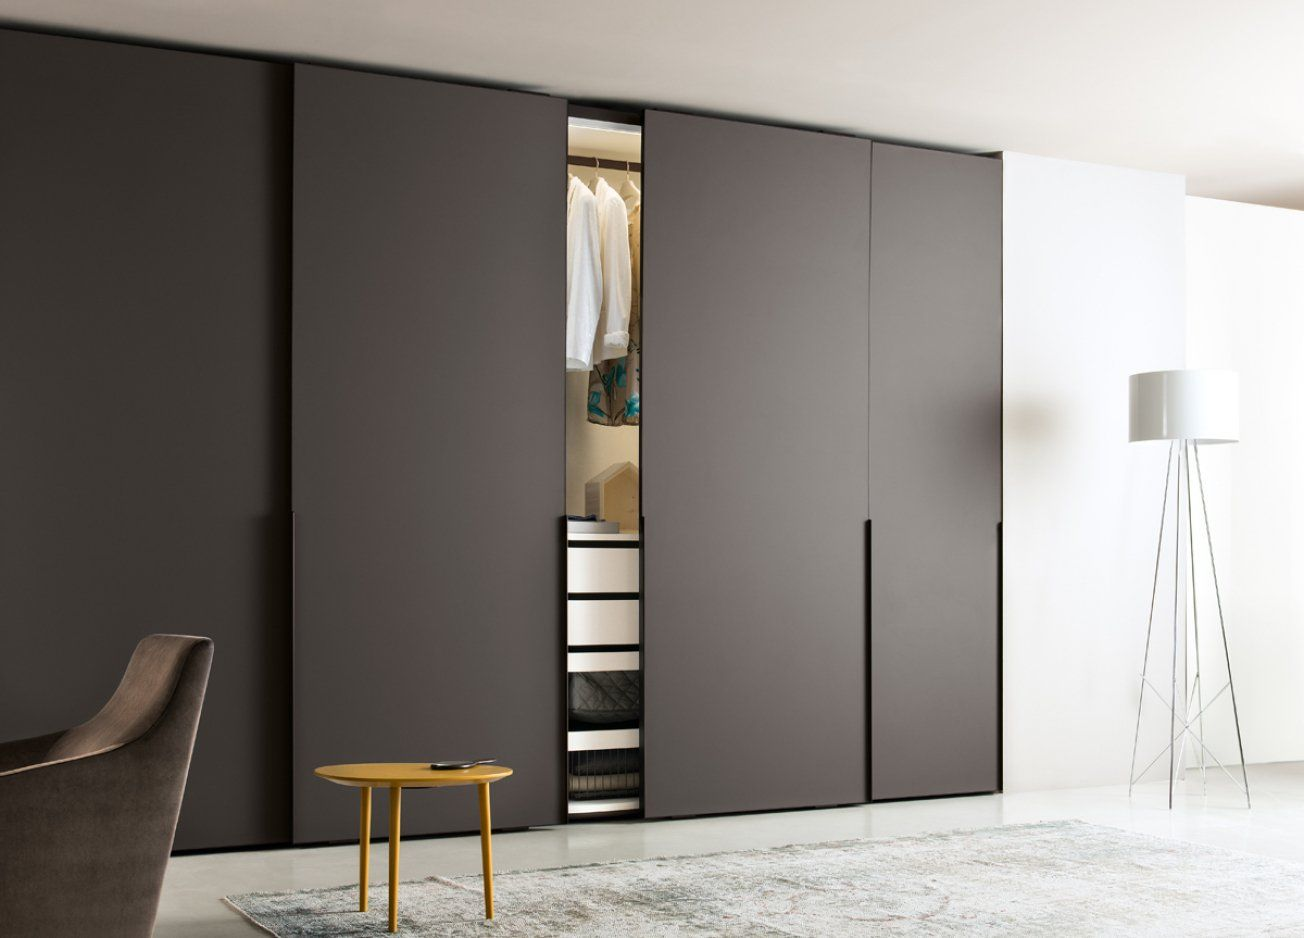 The Ghost Corner Wardrobe From Jesse Furniture, Italy Has Gorgeous Glass  Doors With A Slimline